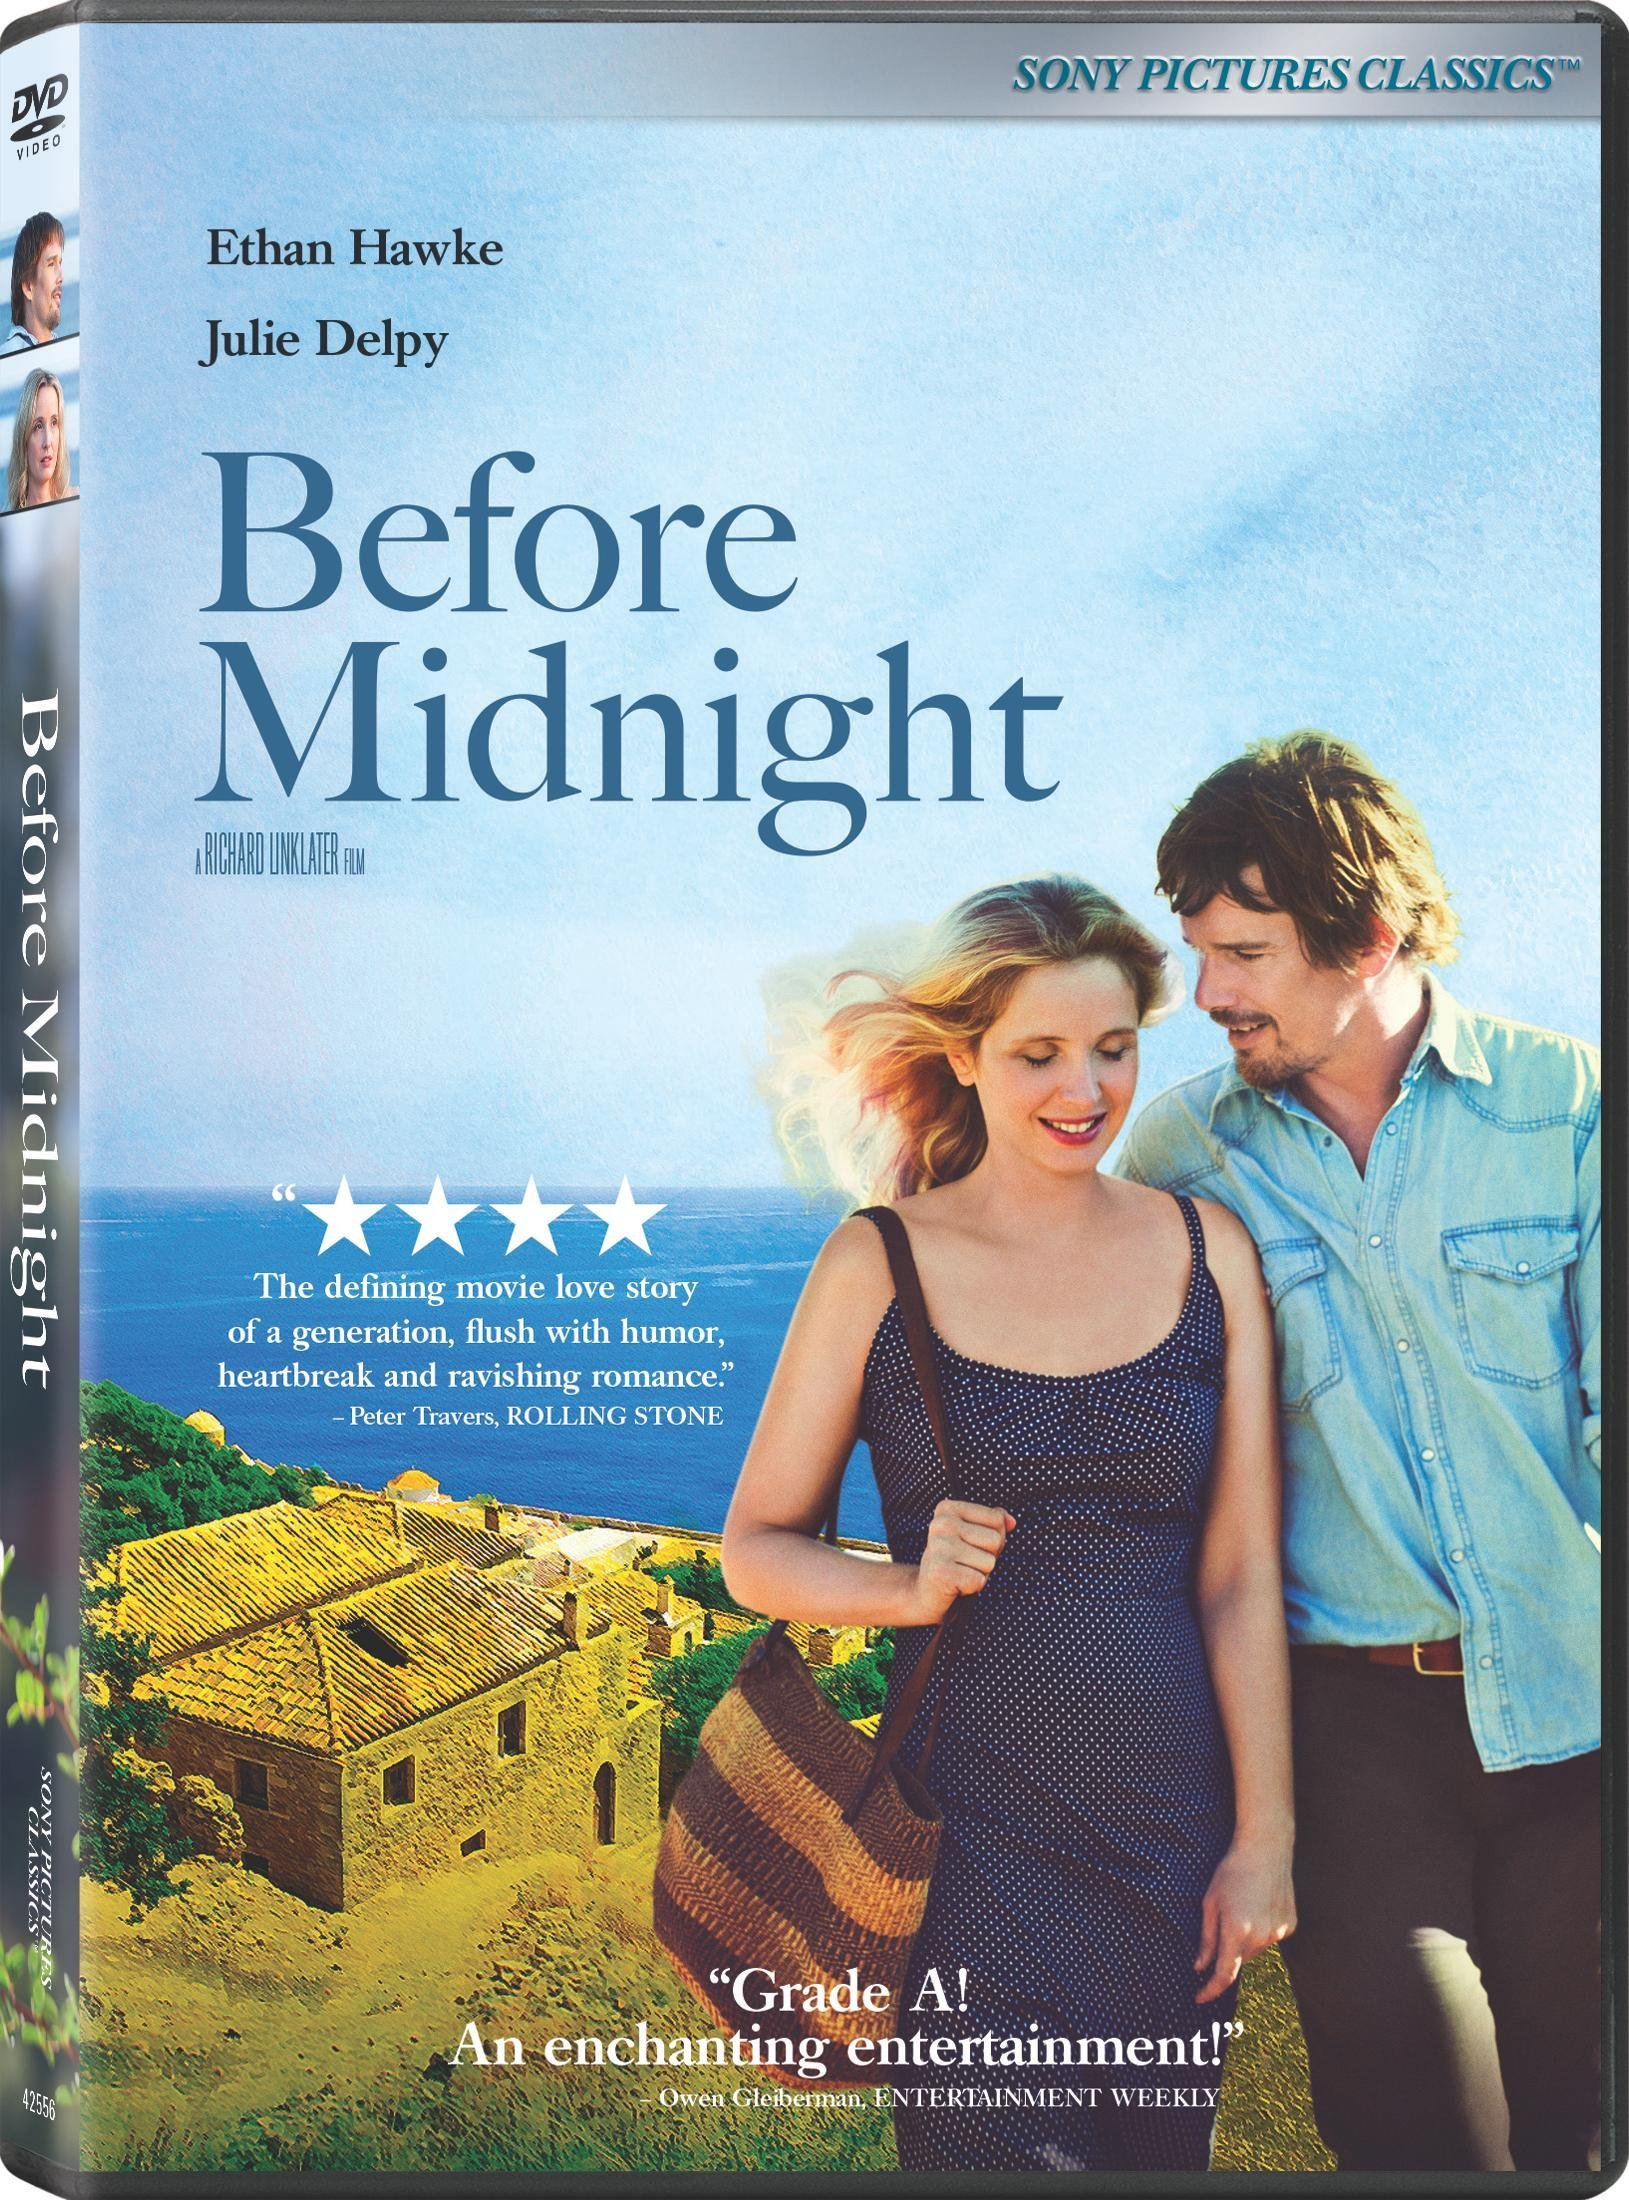 DVD : Before Midnight (Ultraviolet Digital Copy, AC-3, Widescreen, , Dolby)